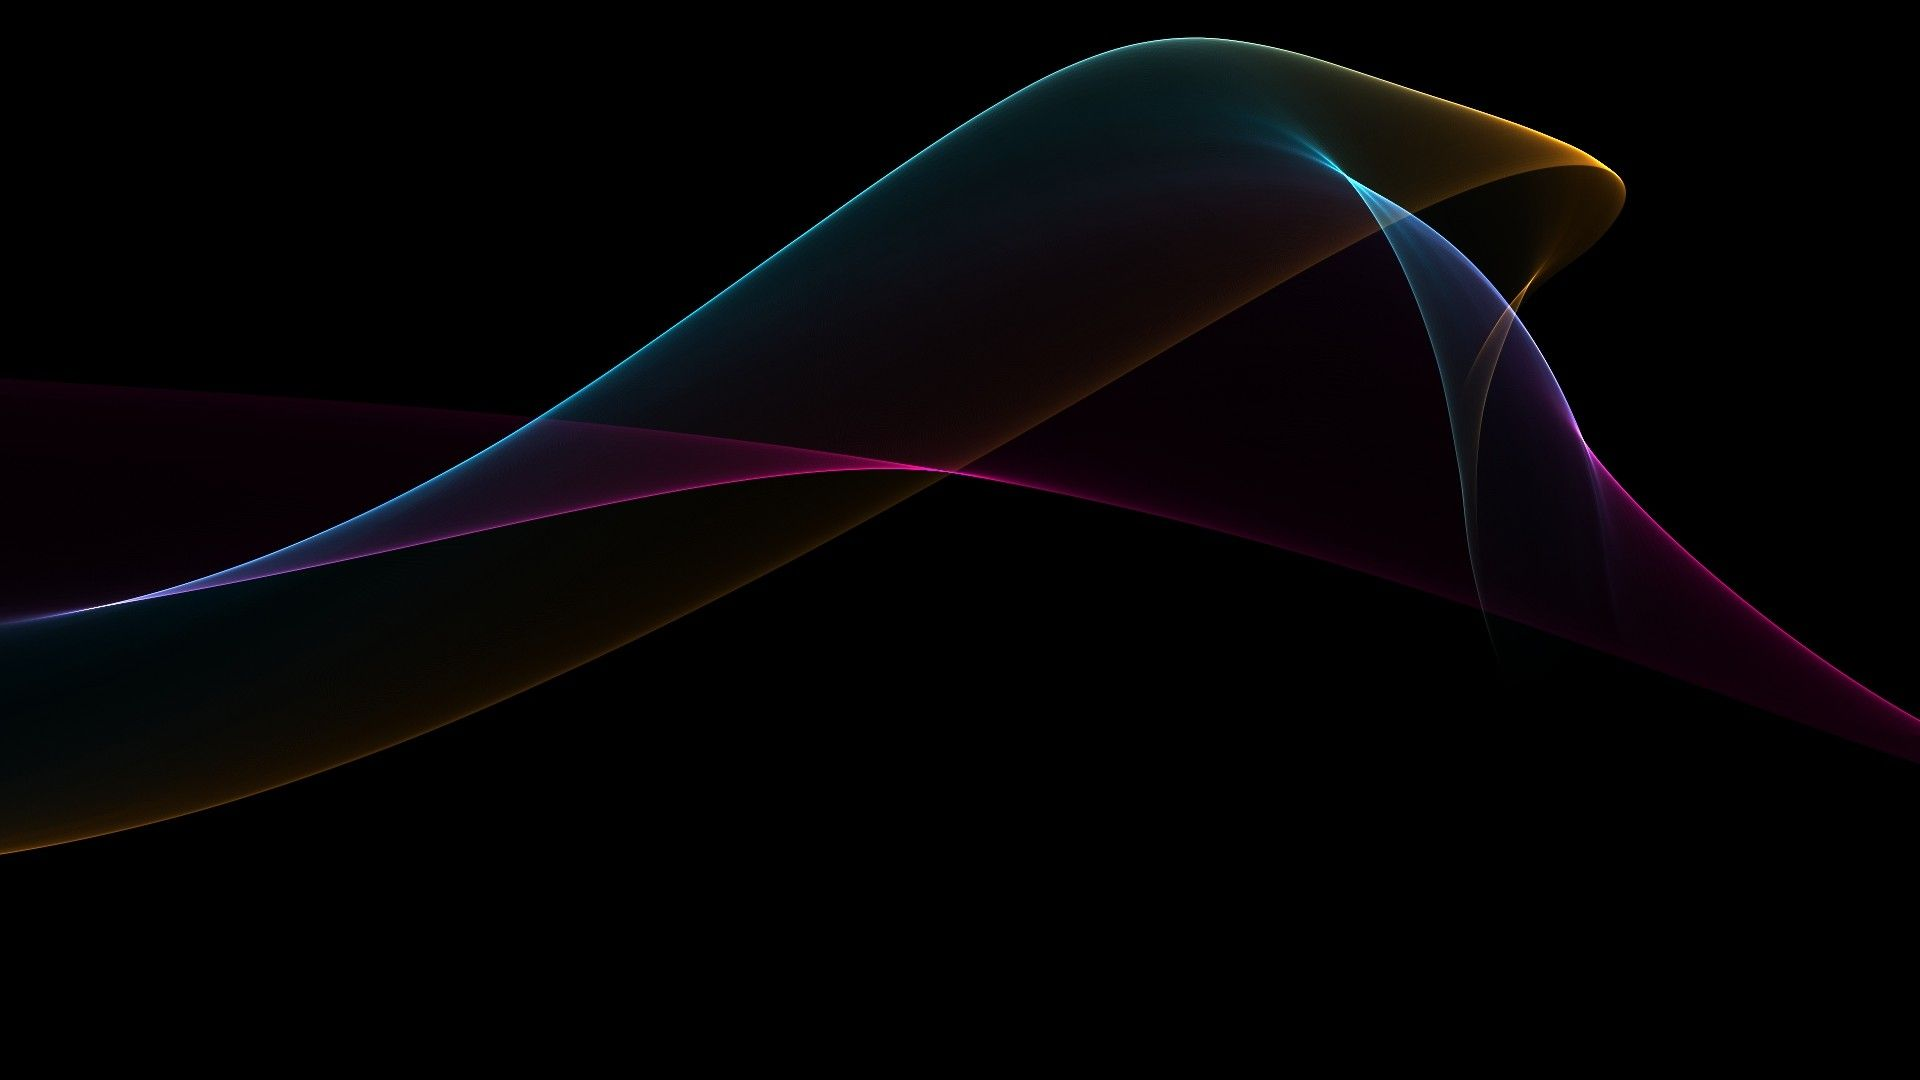 Abstract Black Minimalistic Waves Gradient Fresh New Hd Wallpaper